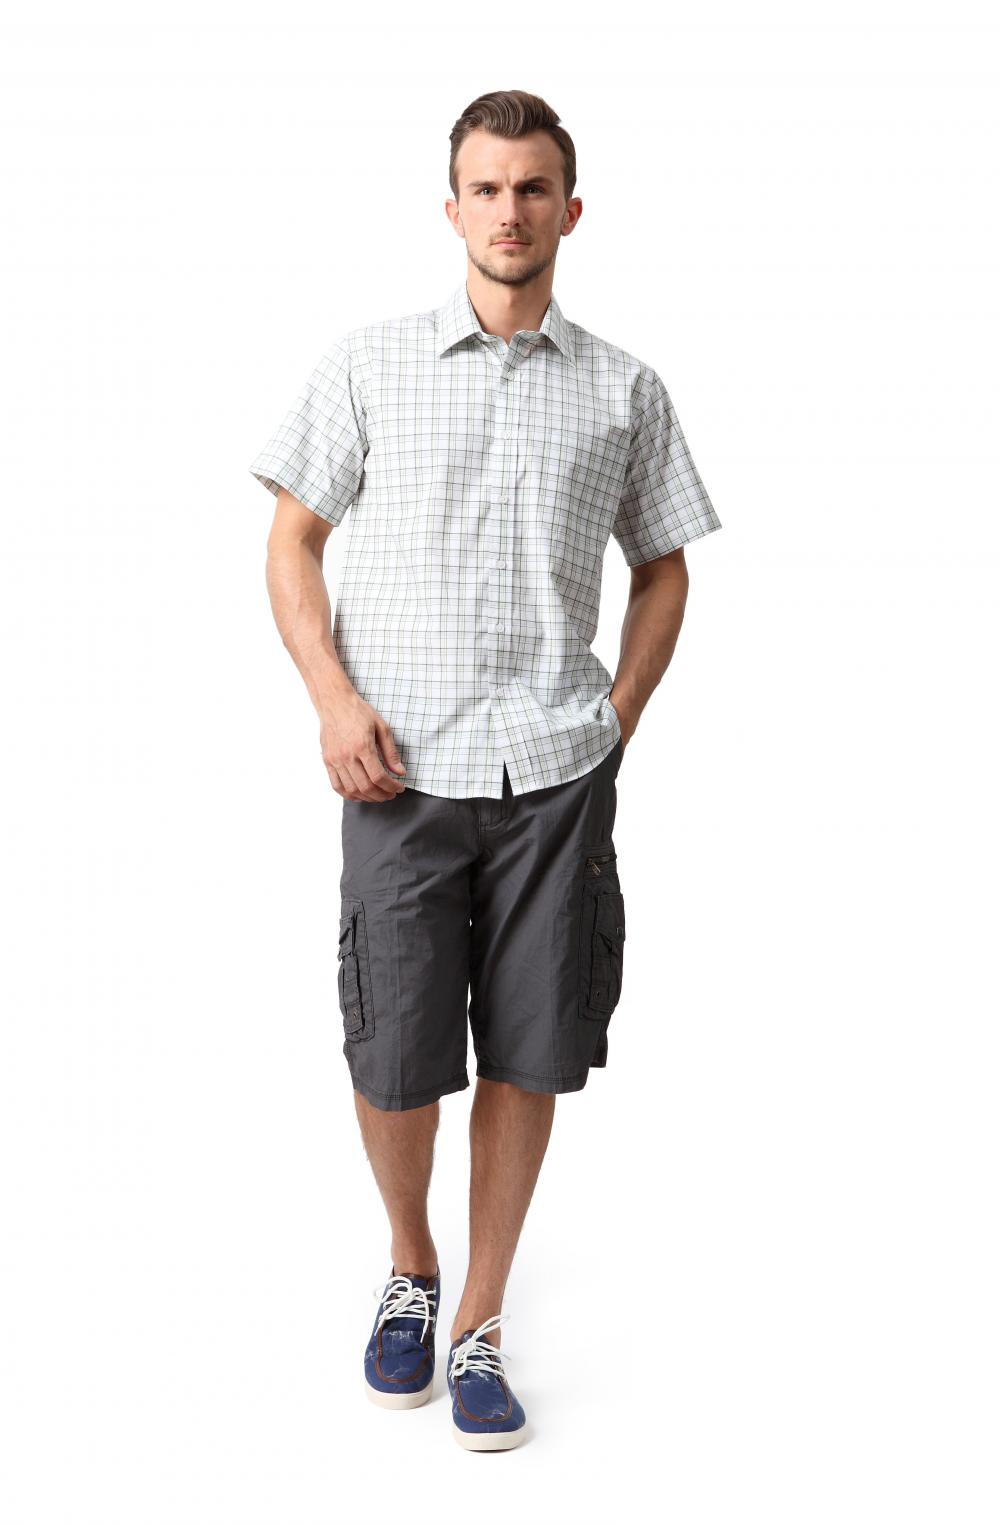 Men's pockets cargo shorts